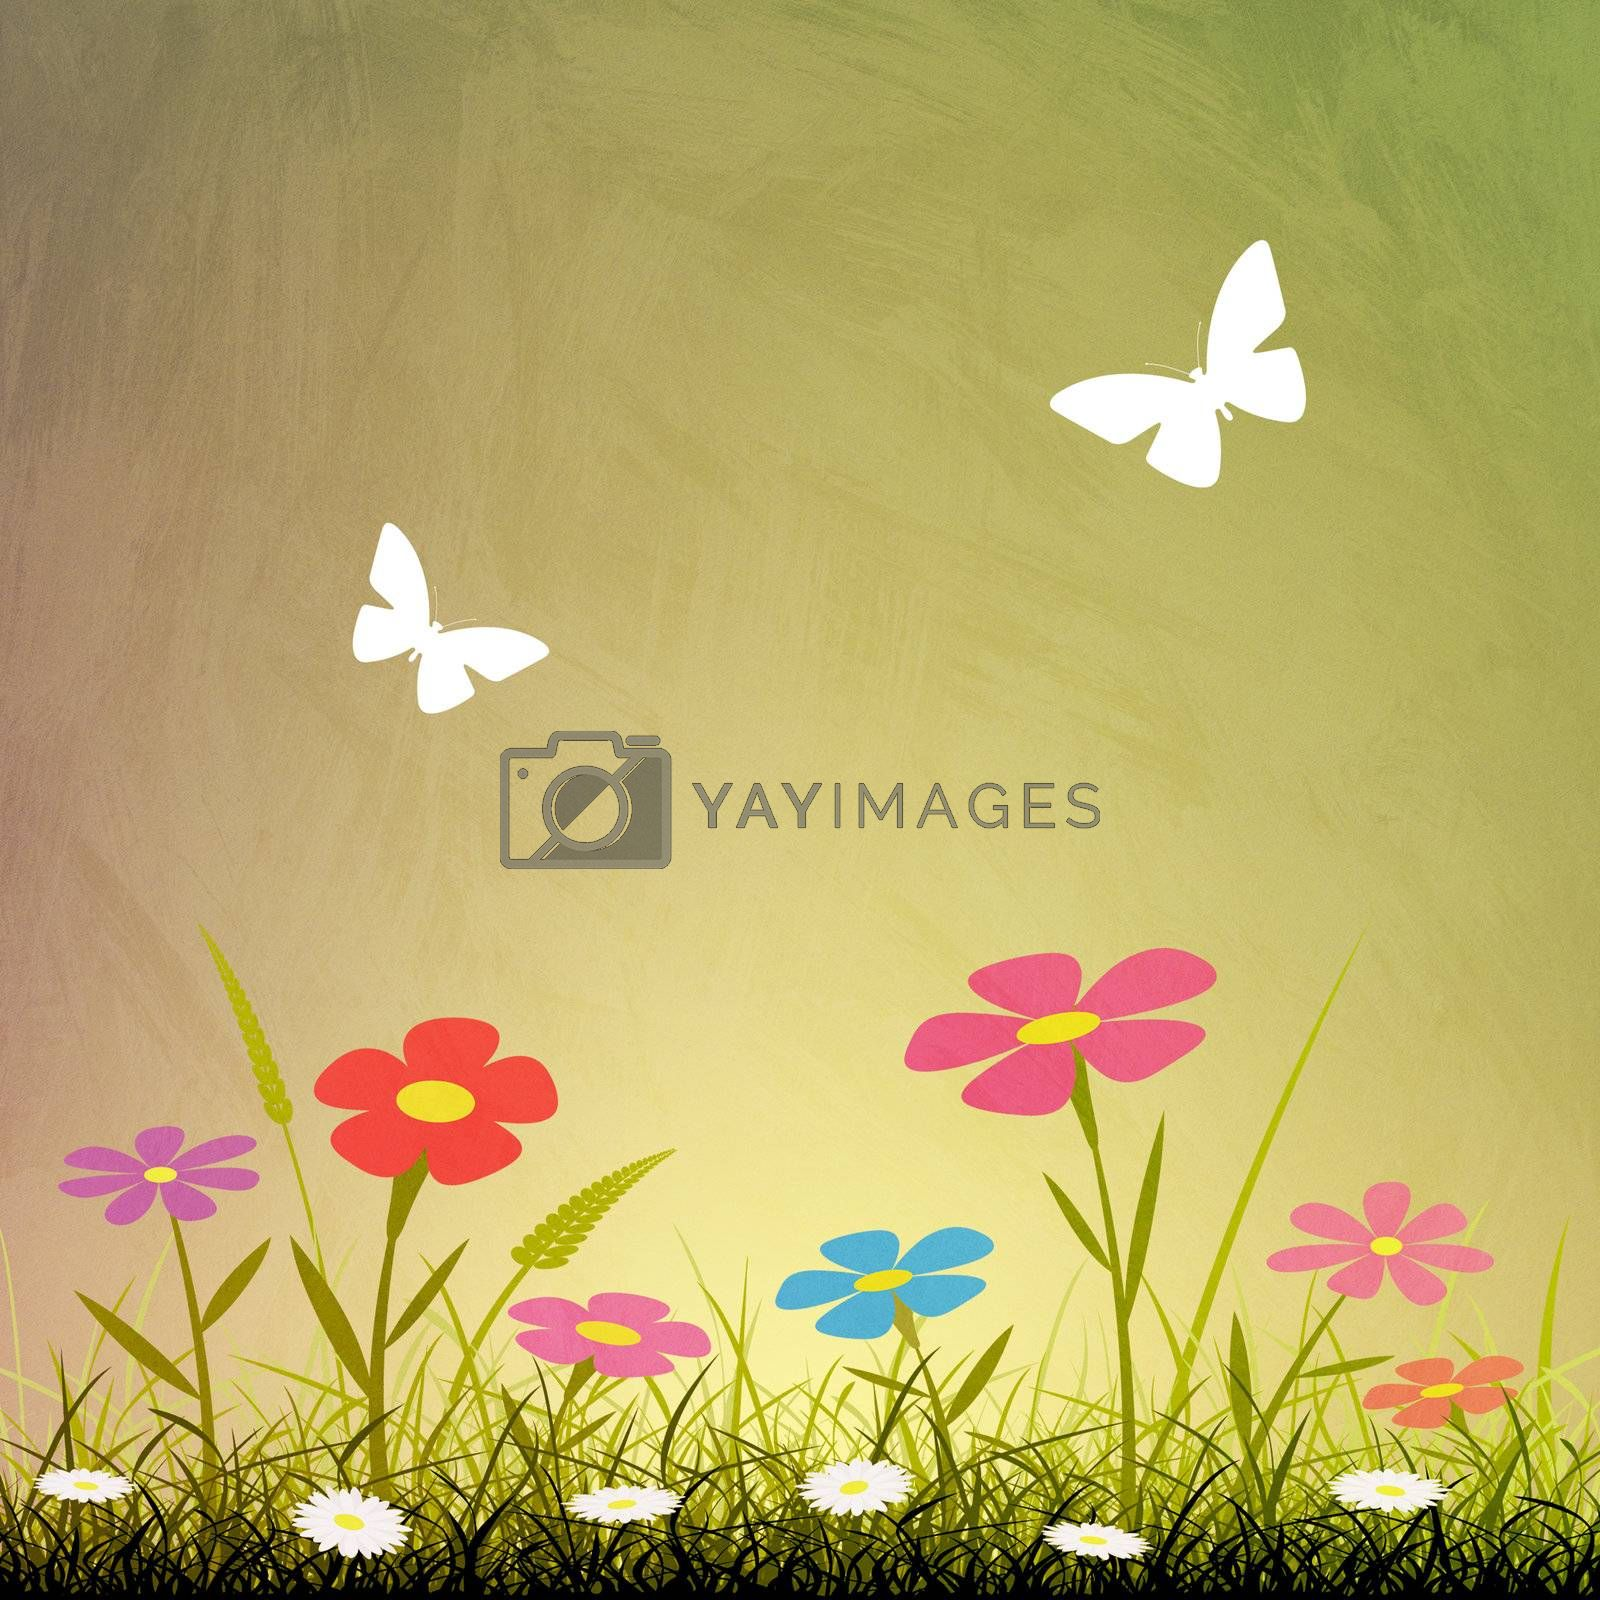 A Simple Grunge Background with Flowers